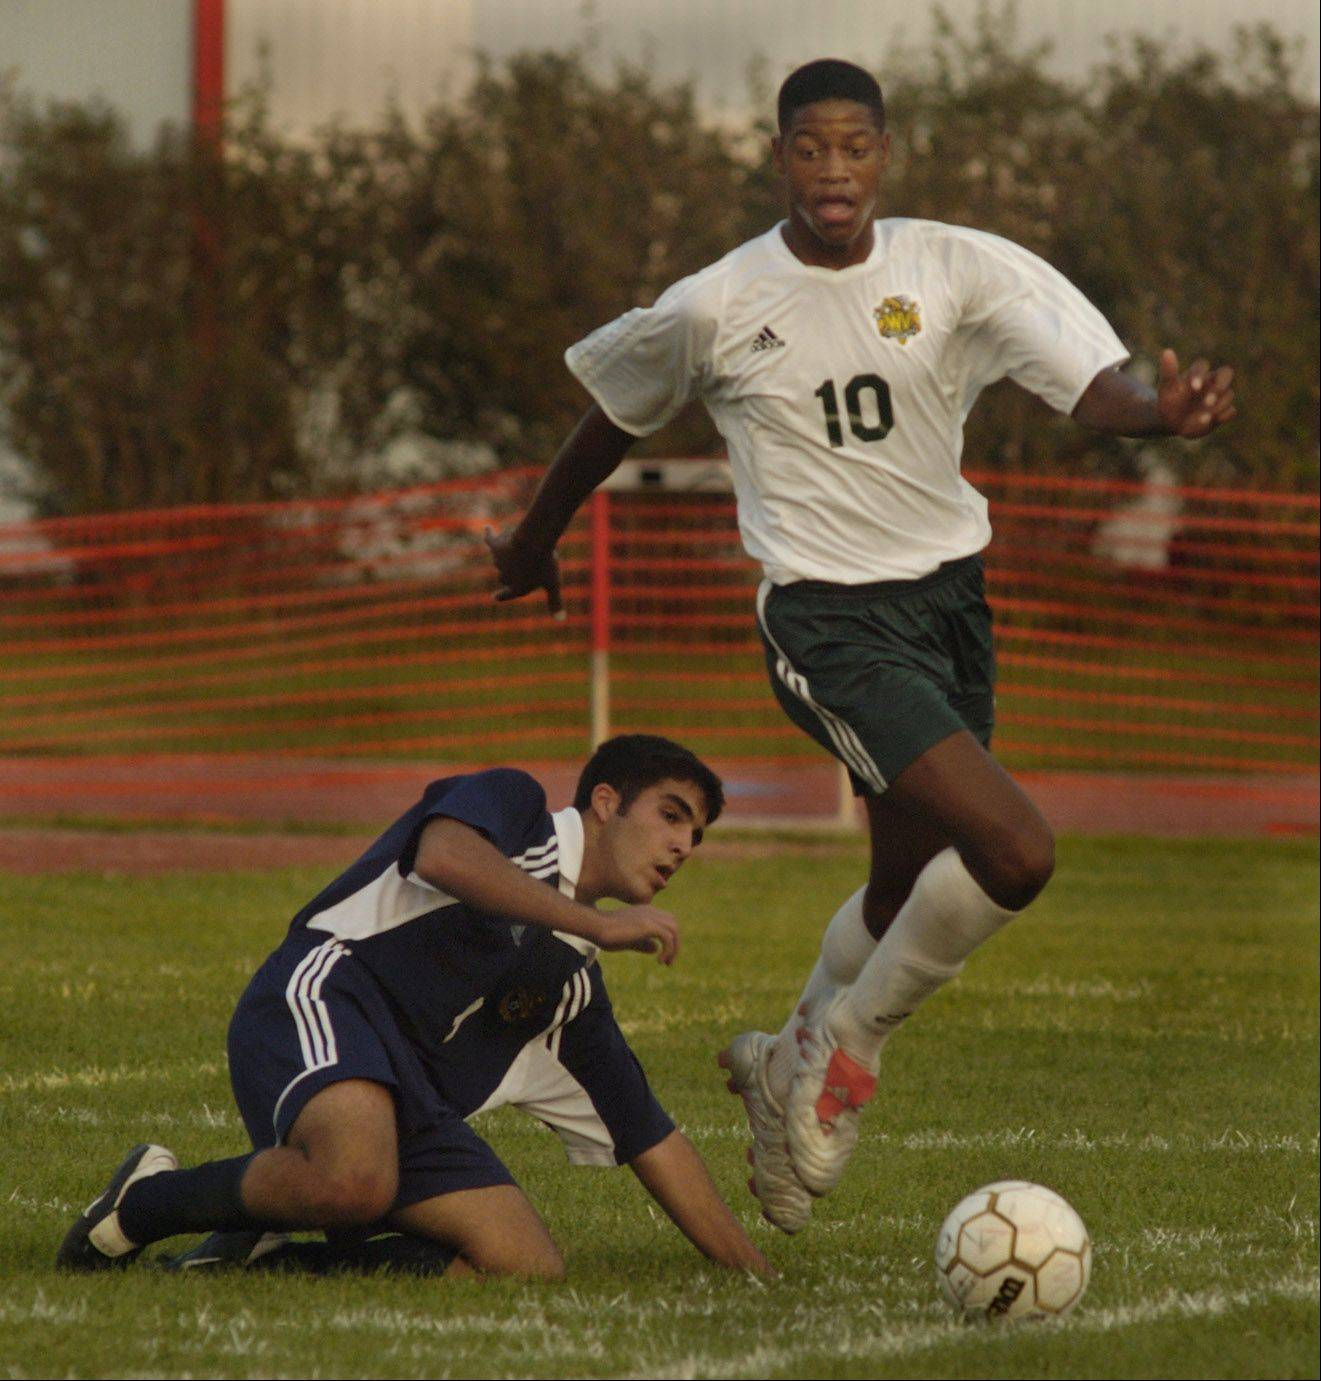 Waubonsie Valley's Chris Schuler played in the Best of the West championship soccer match in Naperville in 2004. Now he's starring for Real Salt Lake's defense in MSL play.